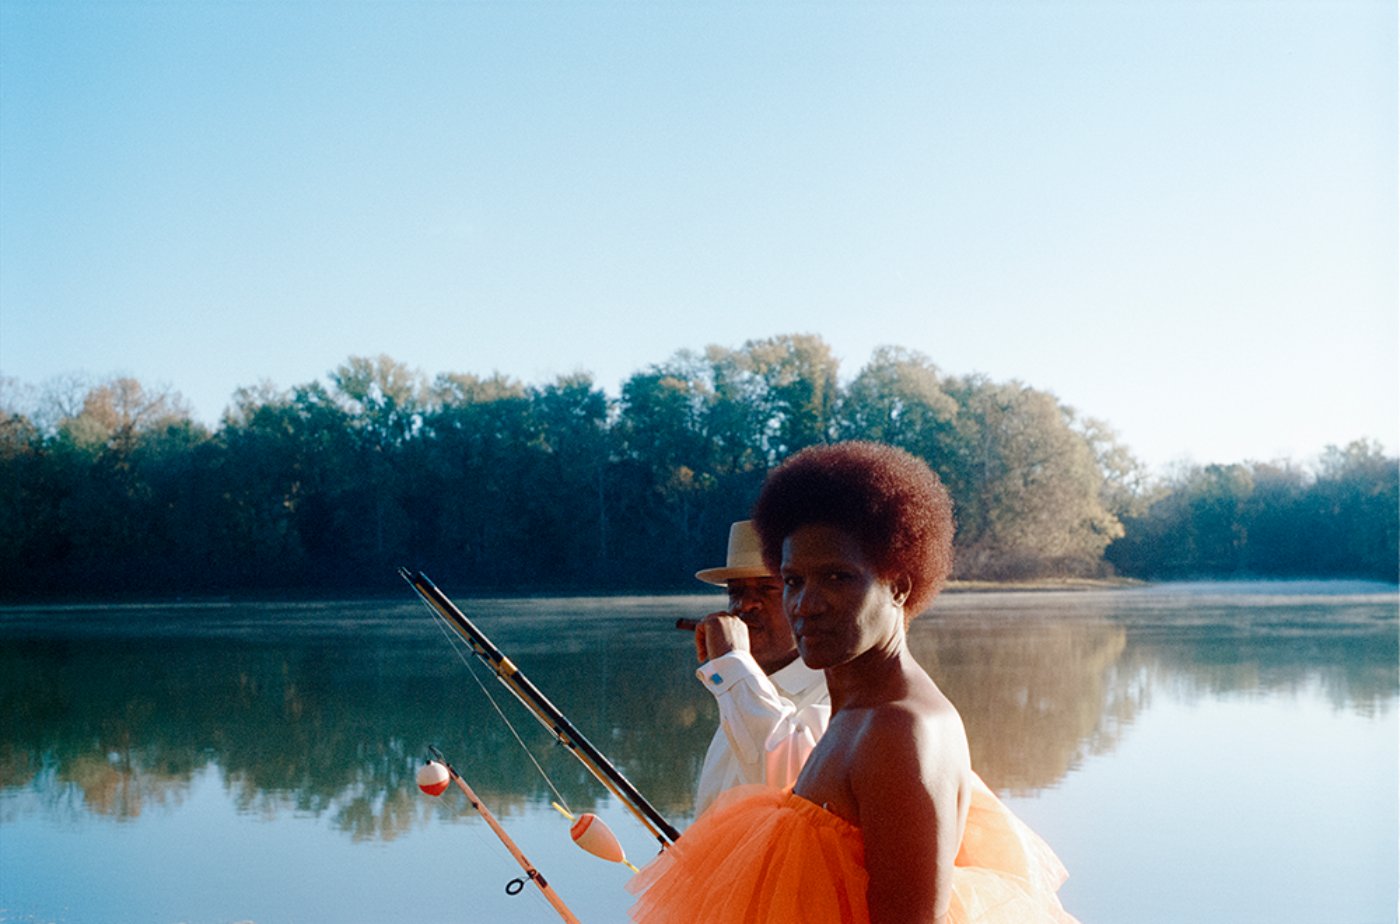 A Black woman in an orange dress and a Black man in a white suit and hat hold fishing rods with a lake in the background.